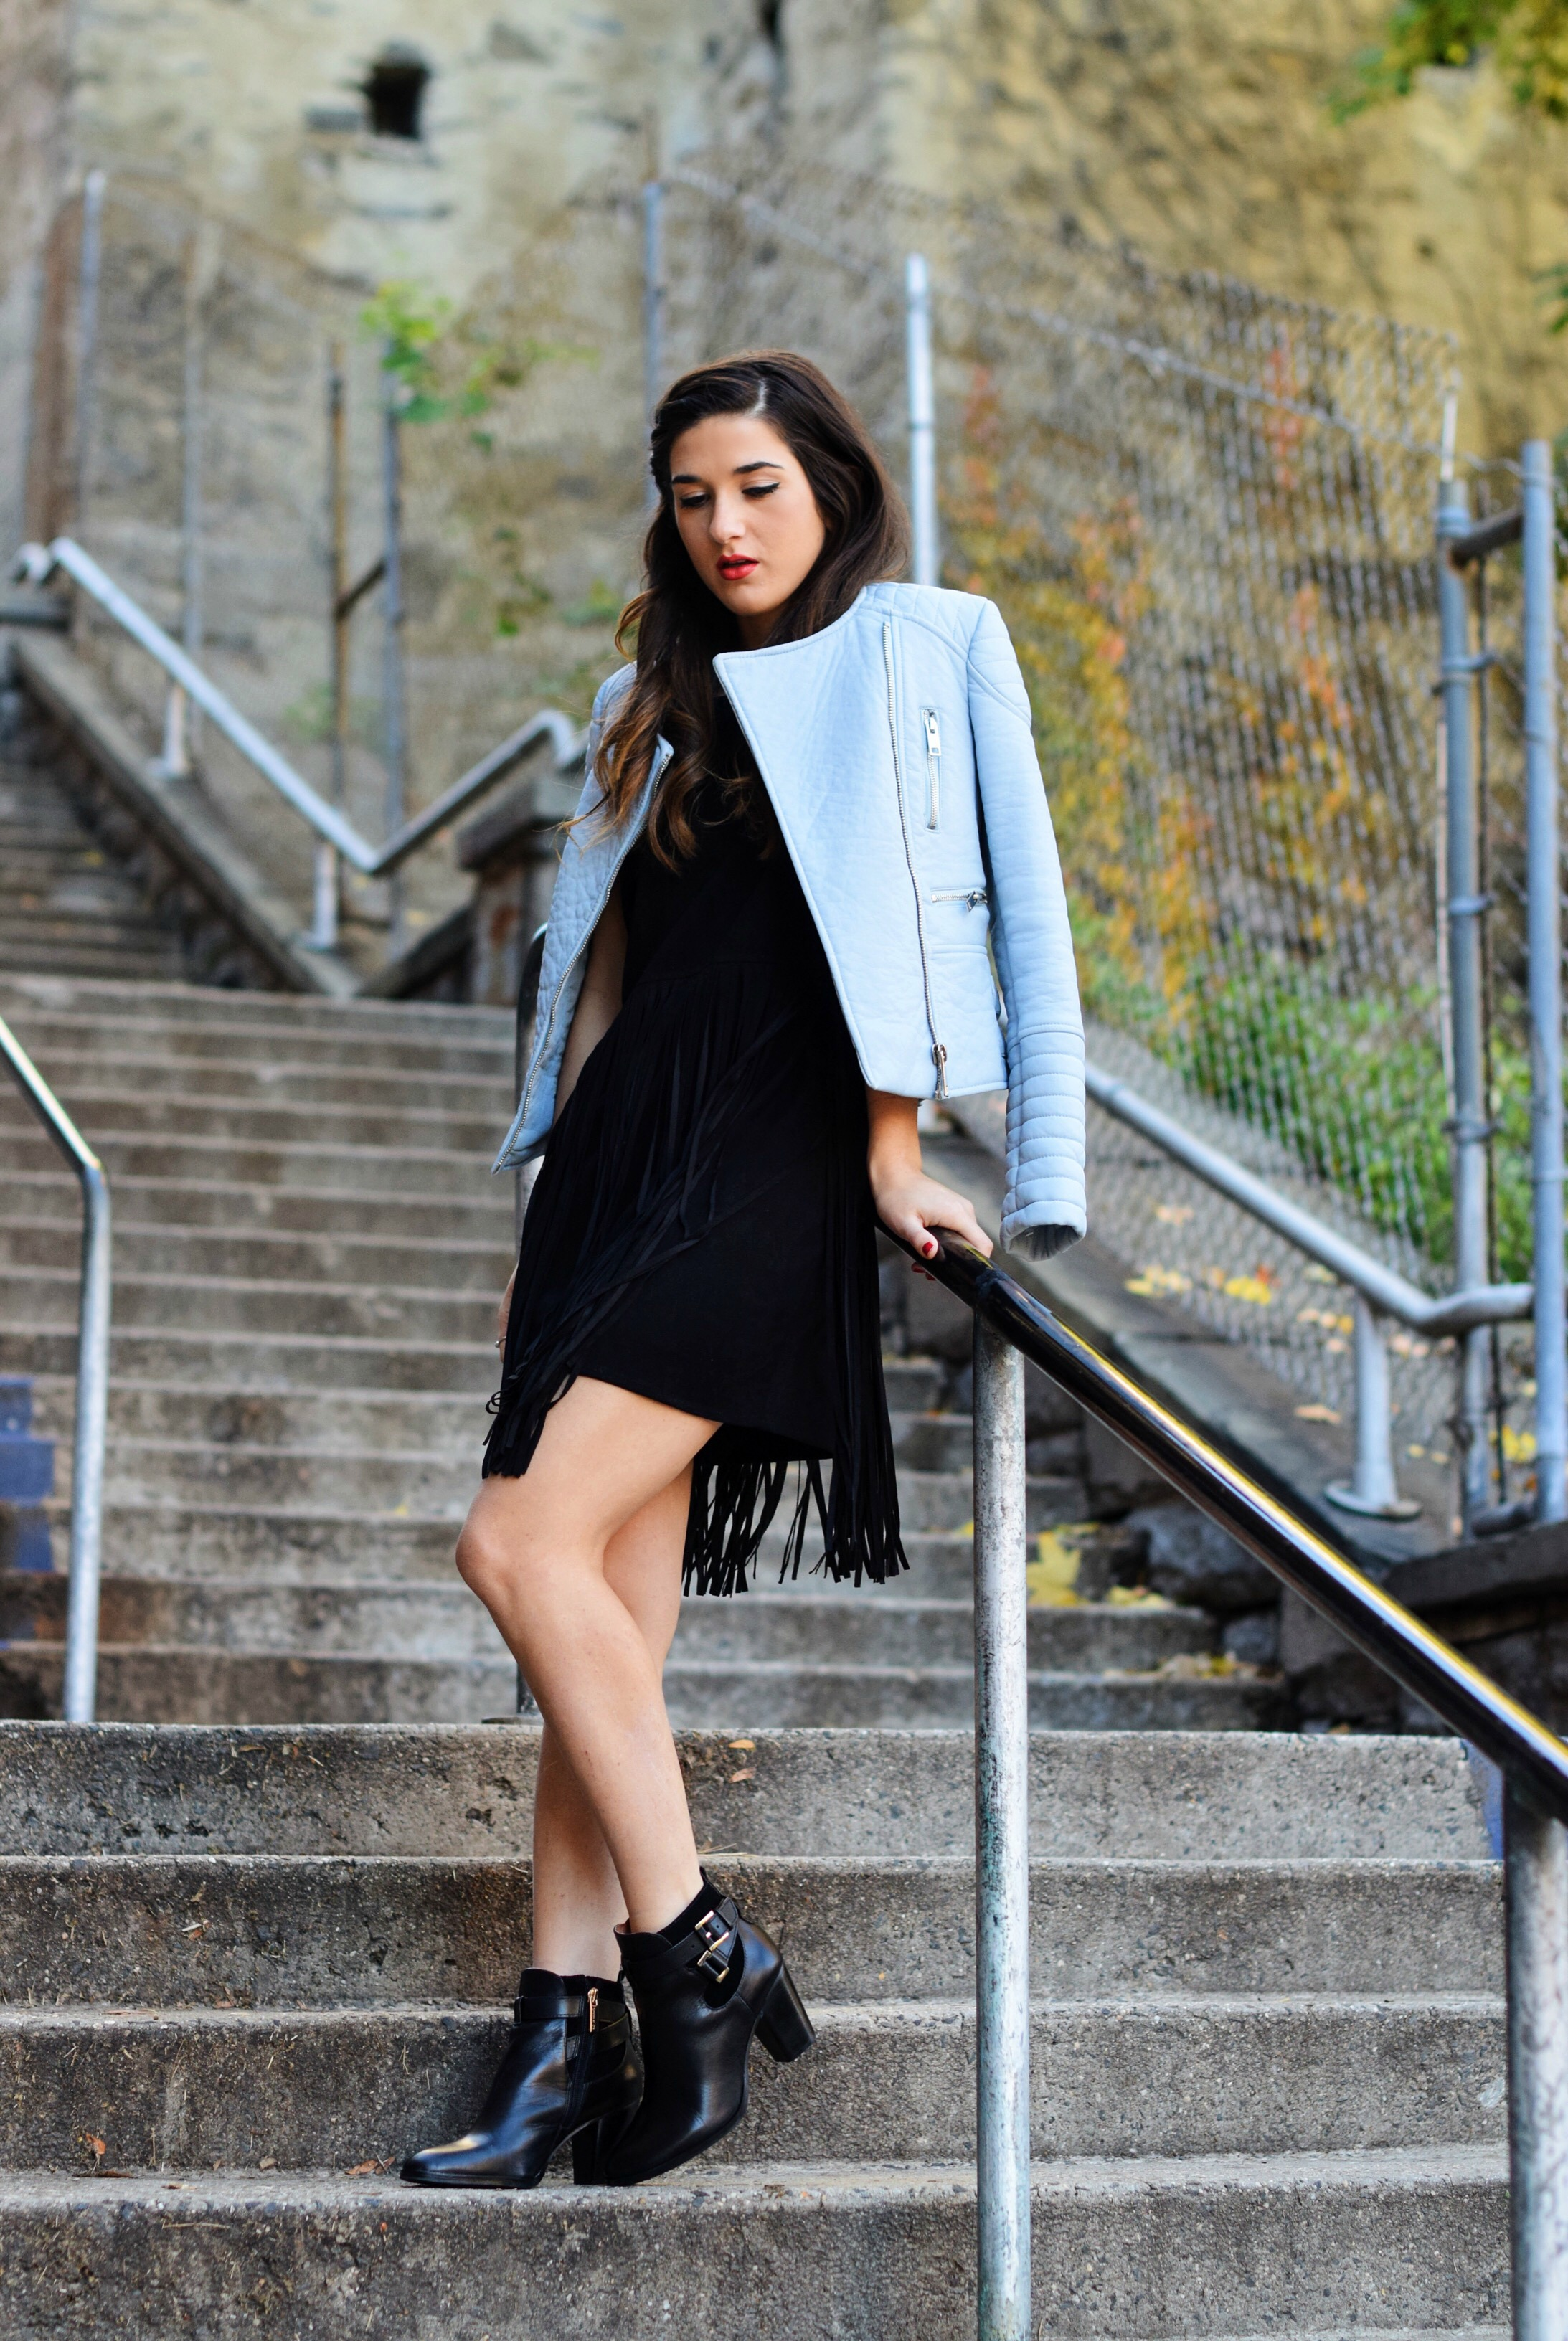 Black Fringe Dress Trèscool Louboutins & Love Fashion Blog Esther Santer NYC Street Style Blogger Baby Blue Leather Jacket Zara Hair Girl Model Photoshoot Booties Nordstrom Outfit OOTD Red Nail Polish Shop Pretty  Fall Look Shoes Winter Trendy Inspo .jpg